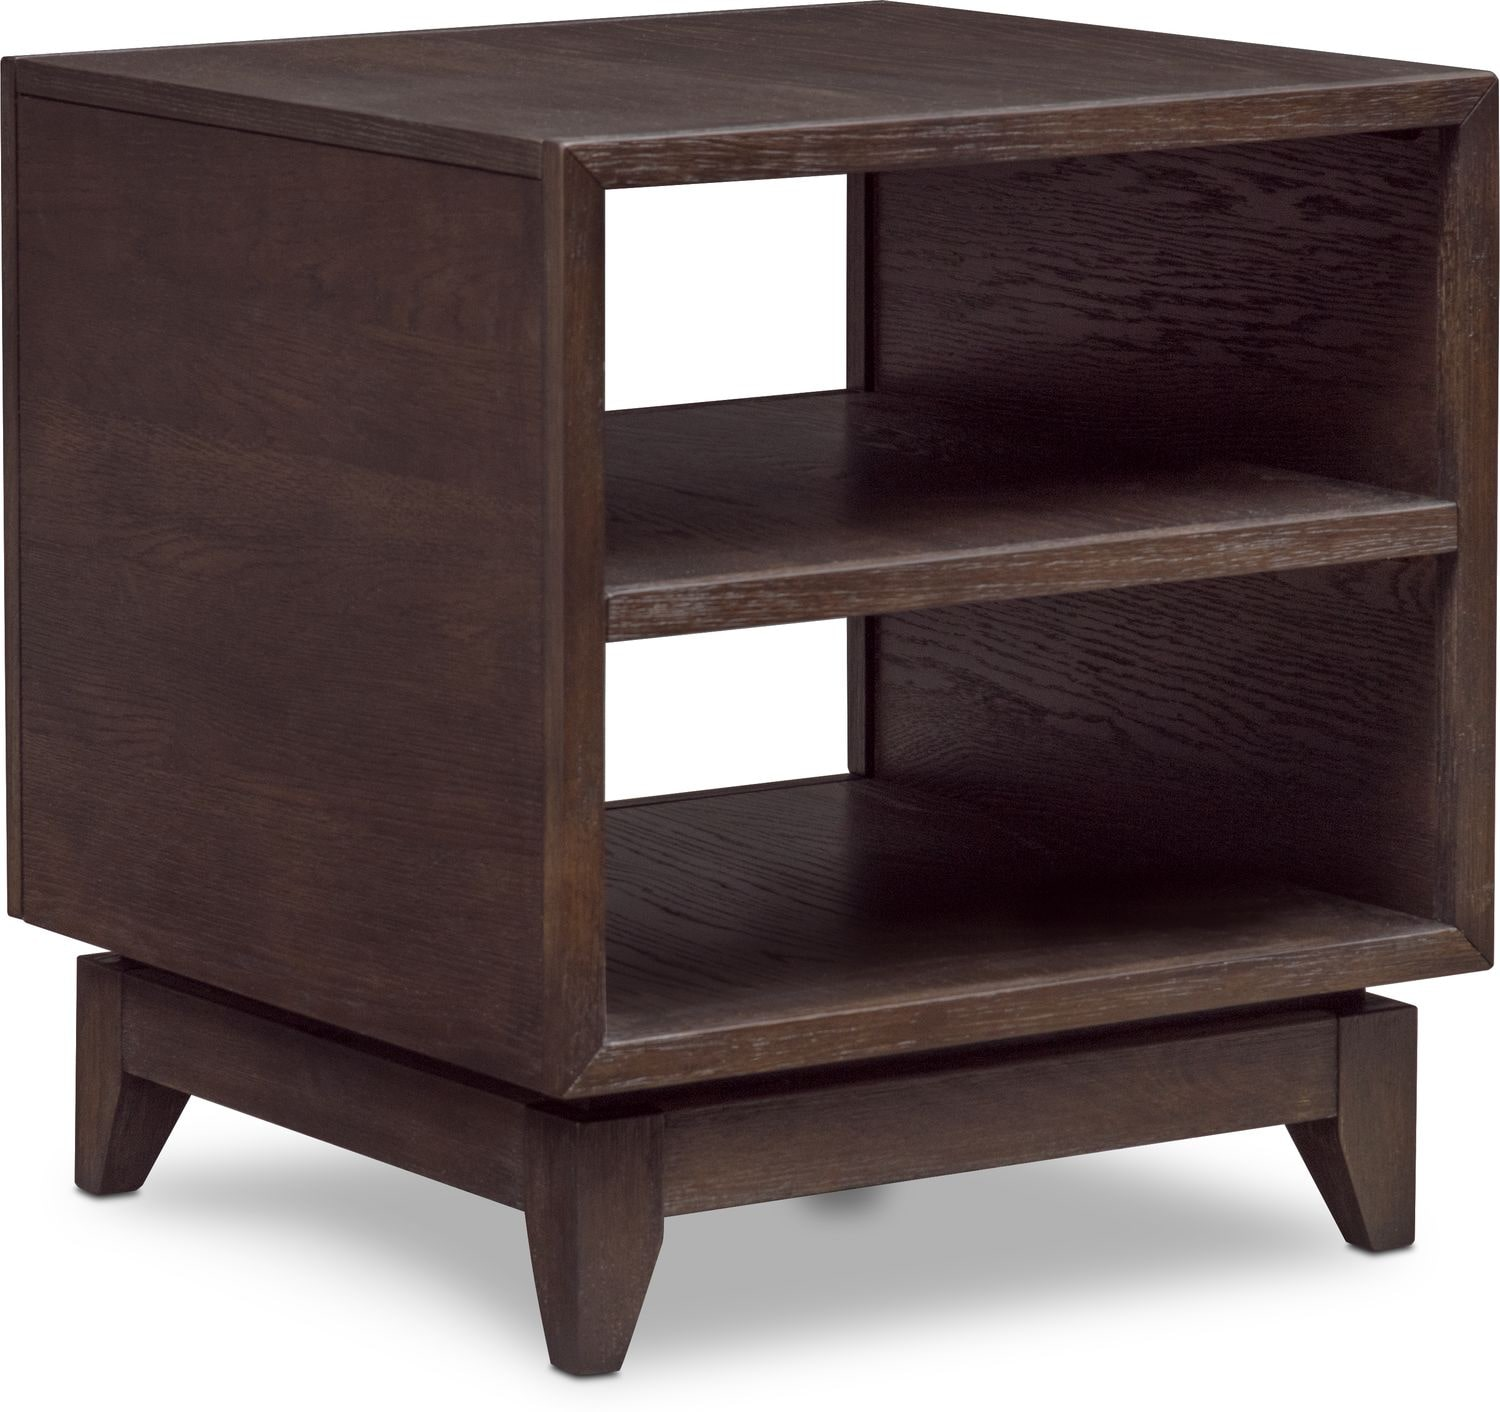 Accent and Occasional Furniture - Saybrook End Table - Umber